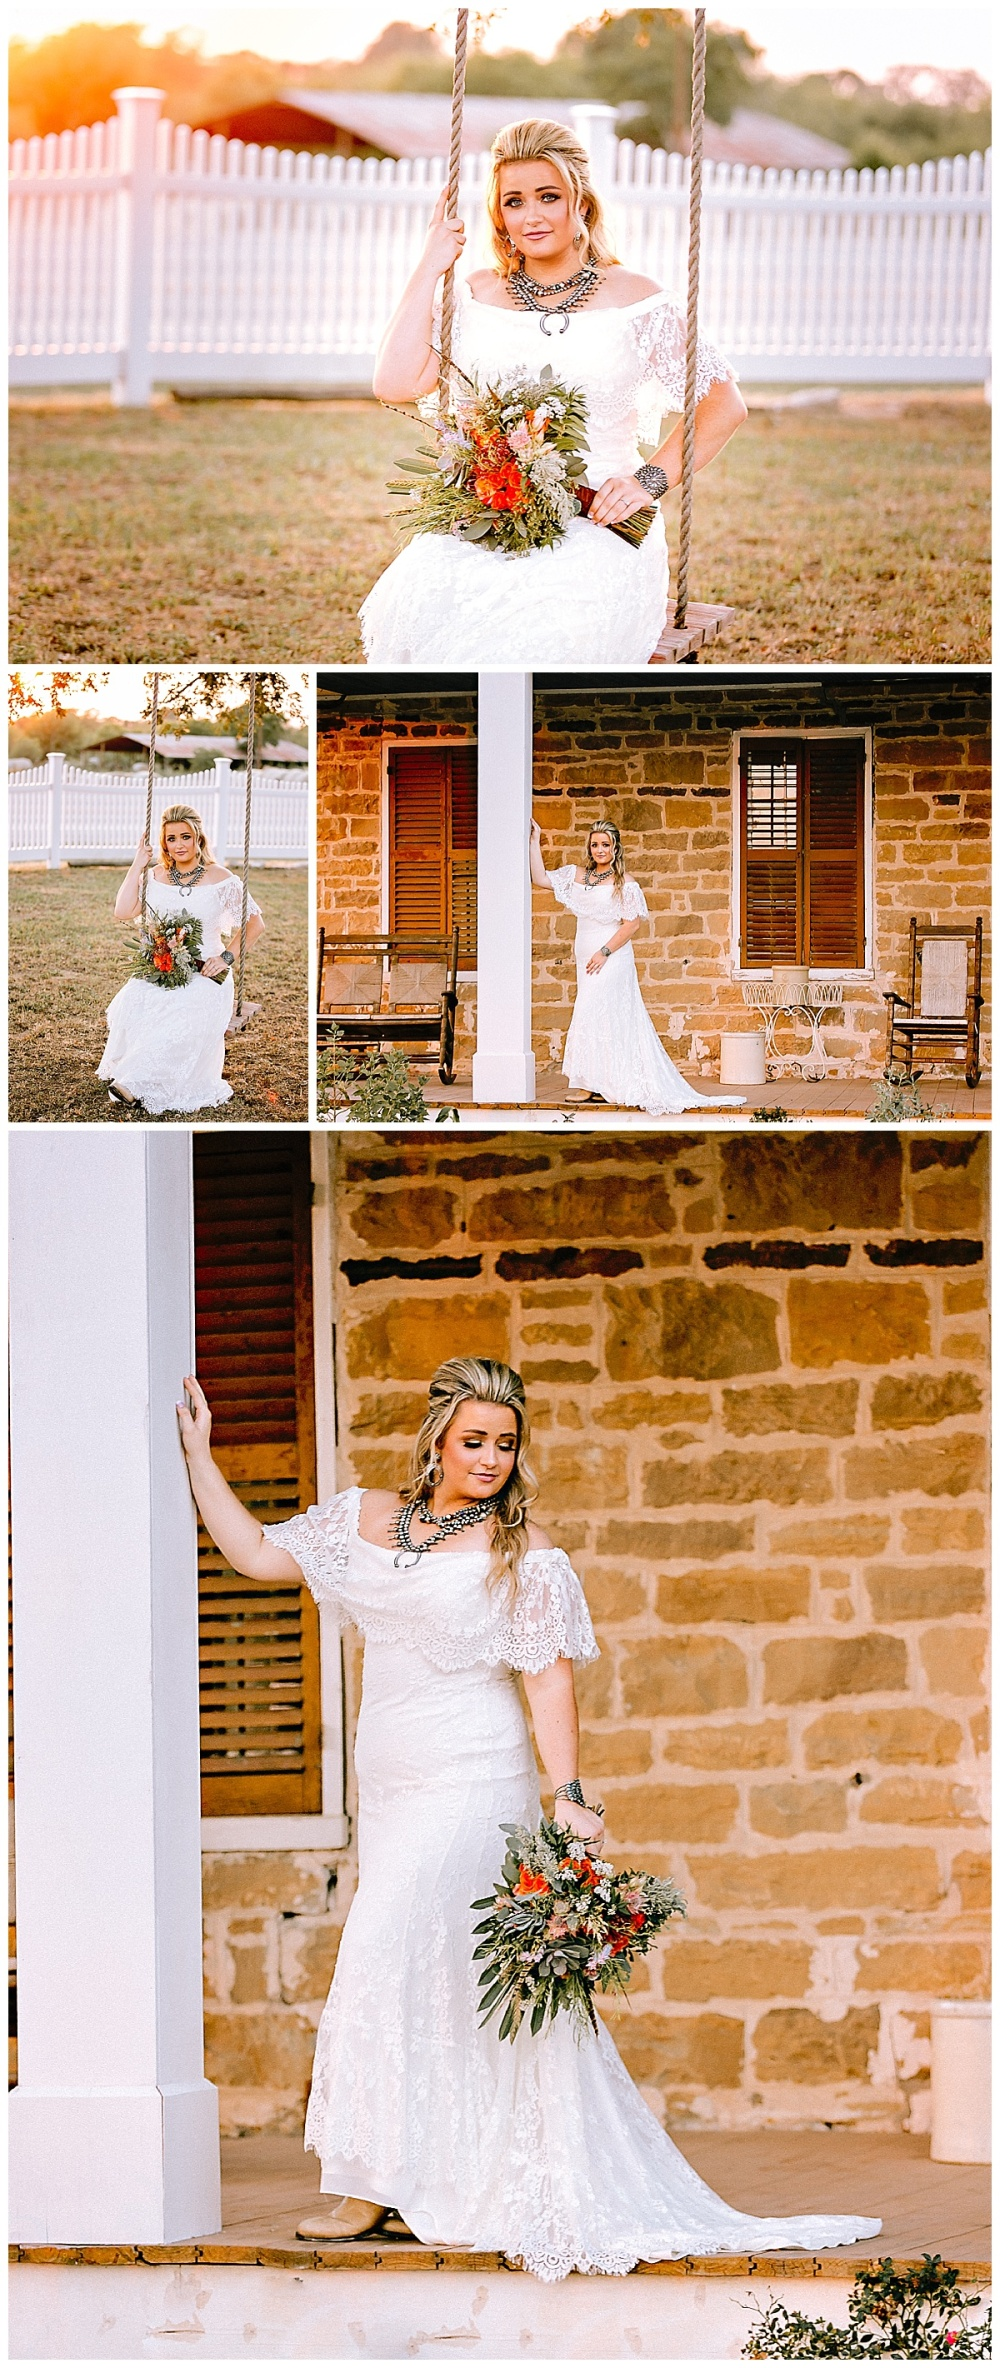 Carly-Barton-Photography-Whitehall-Polley-Mansion-Sutherland-Springs-Texas-Wedding-Bridals-Caitlin_0005.jpg